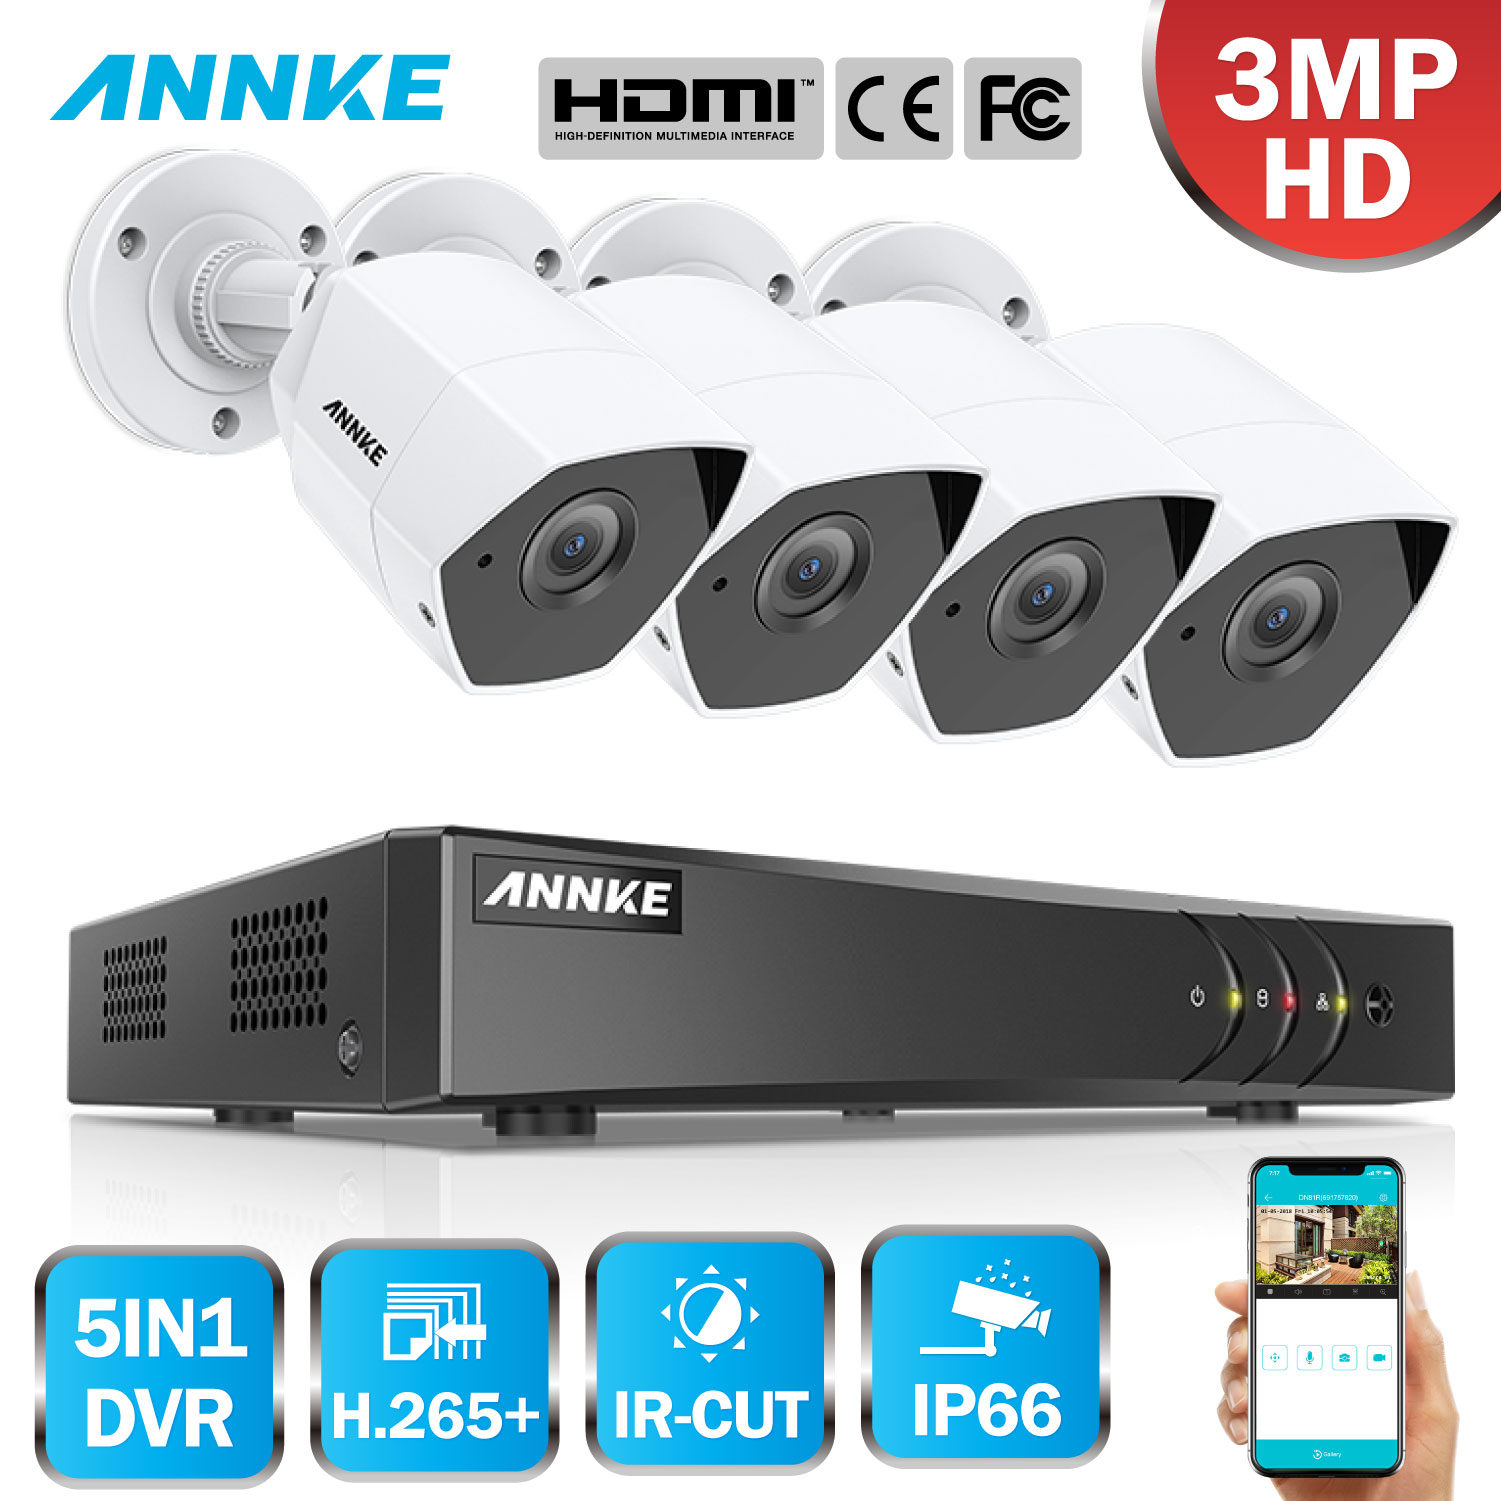 ANNKE FHD 8CH 3MP 5in1 Security DVR System CCTV Kit 4pcs Weatherproof Outdoor Surveillance Bullet Camera Surveillance System KitANNKE FHD 8CH 3MP 5in1 Security DVR System CCTV Kit 4pcs Weatherproof Outdoor Surveillance Bullet Camera Surveillance System Kit